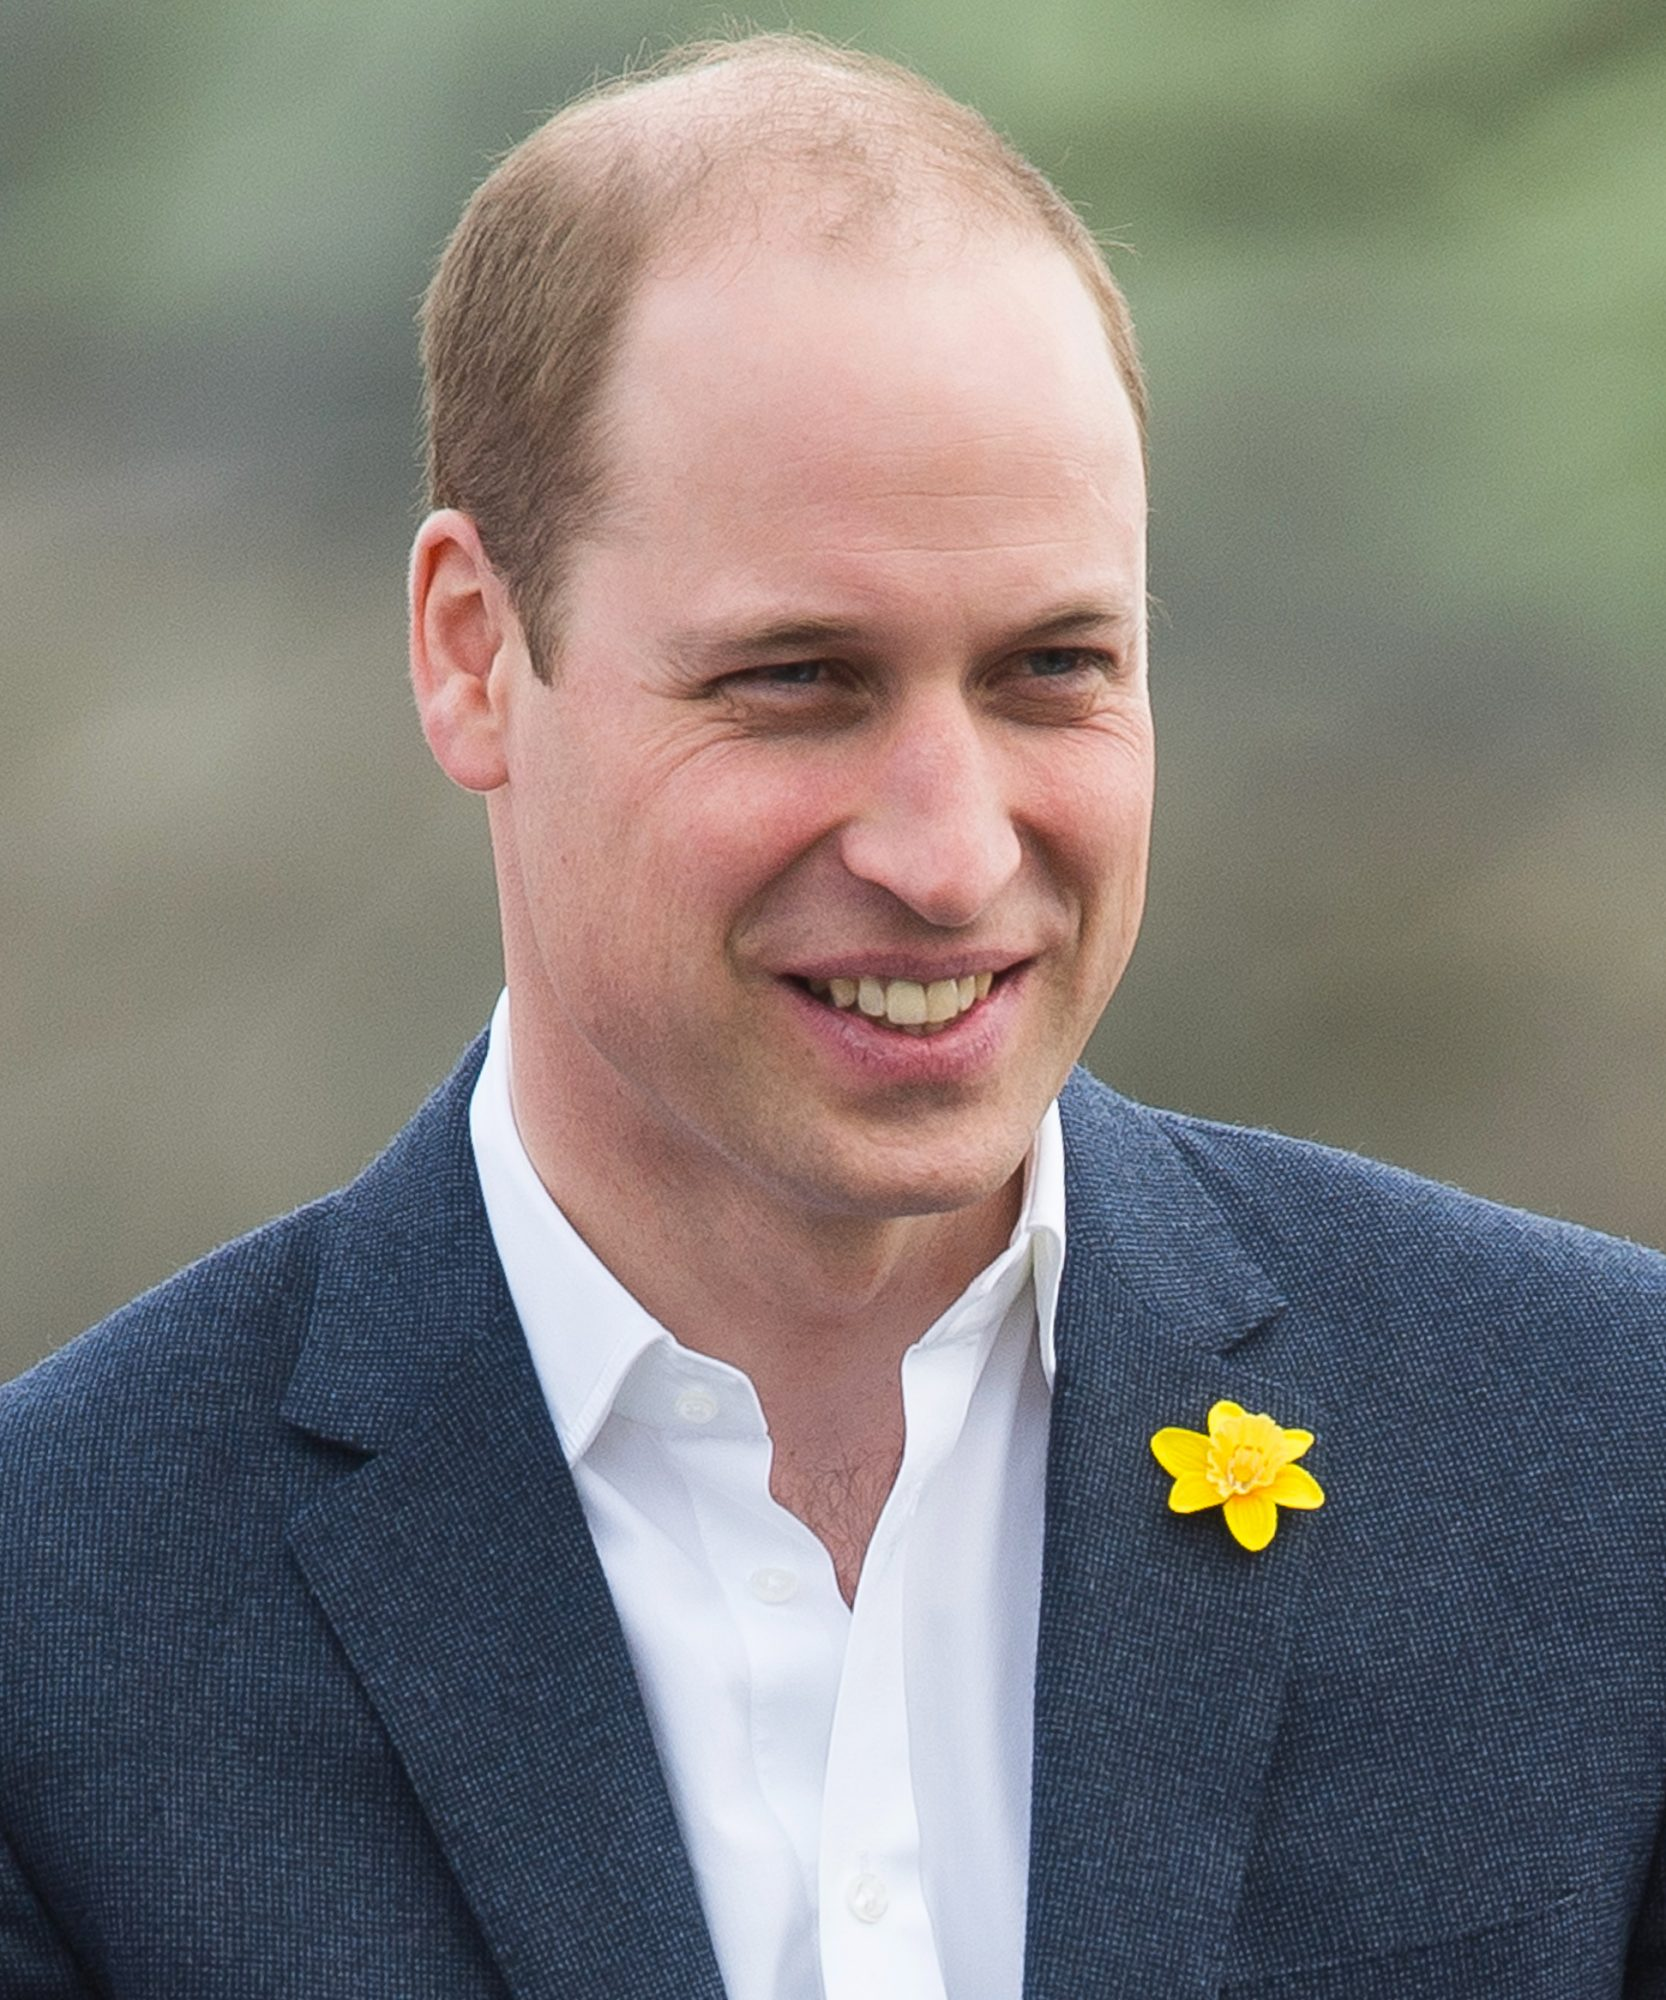 Here's Prince William Goofing Off with His Adorable Young Cousin